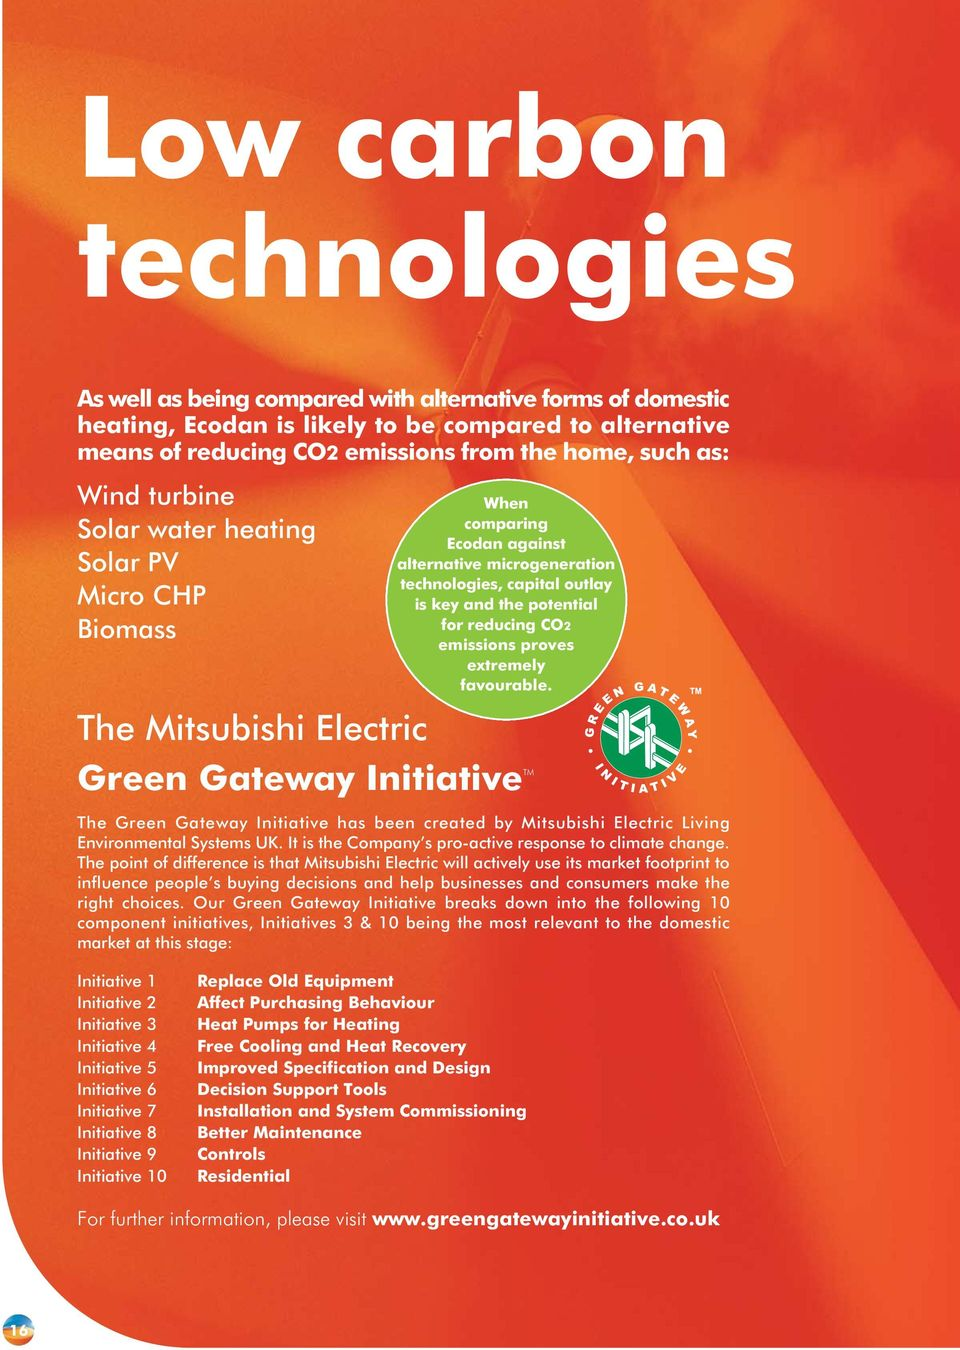 proves extremely favourable. The Mitsubishi Electric TM Green Gateway Initiative The Green Gateway Initiative has been created by Mitsubishi Electric Living Environmental Systems UK.